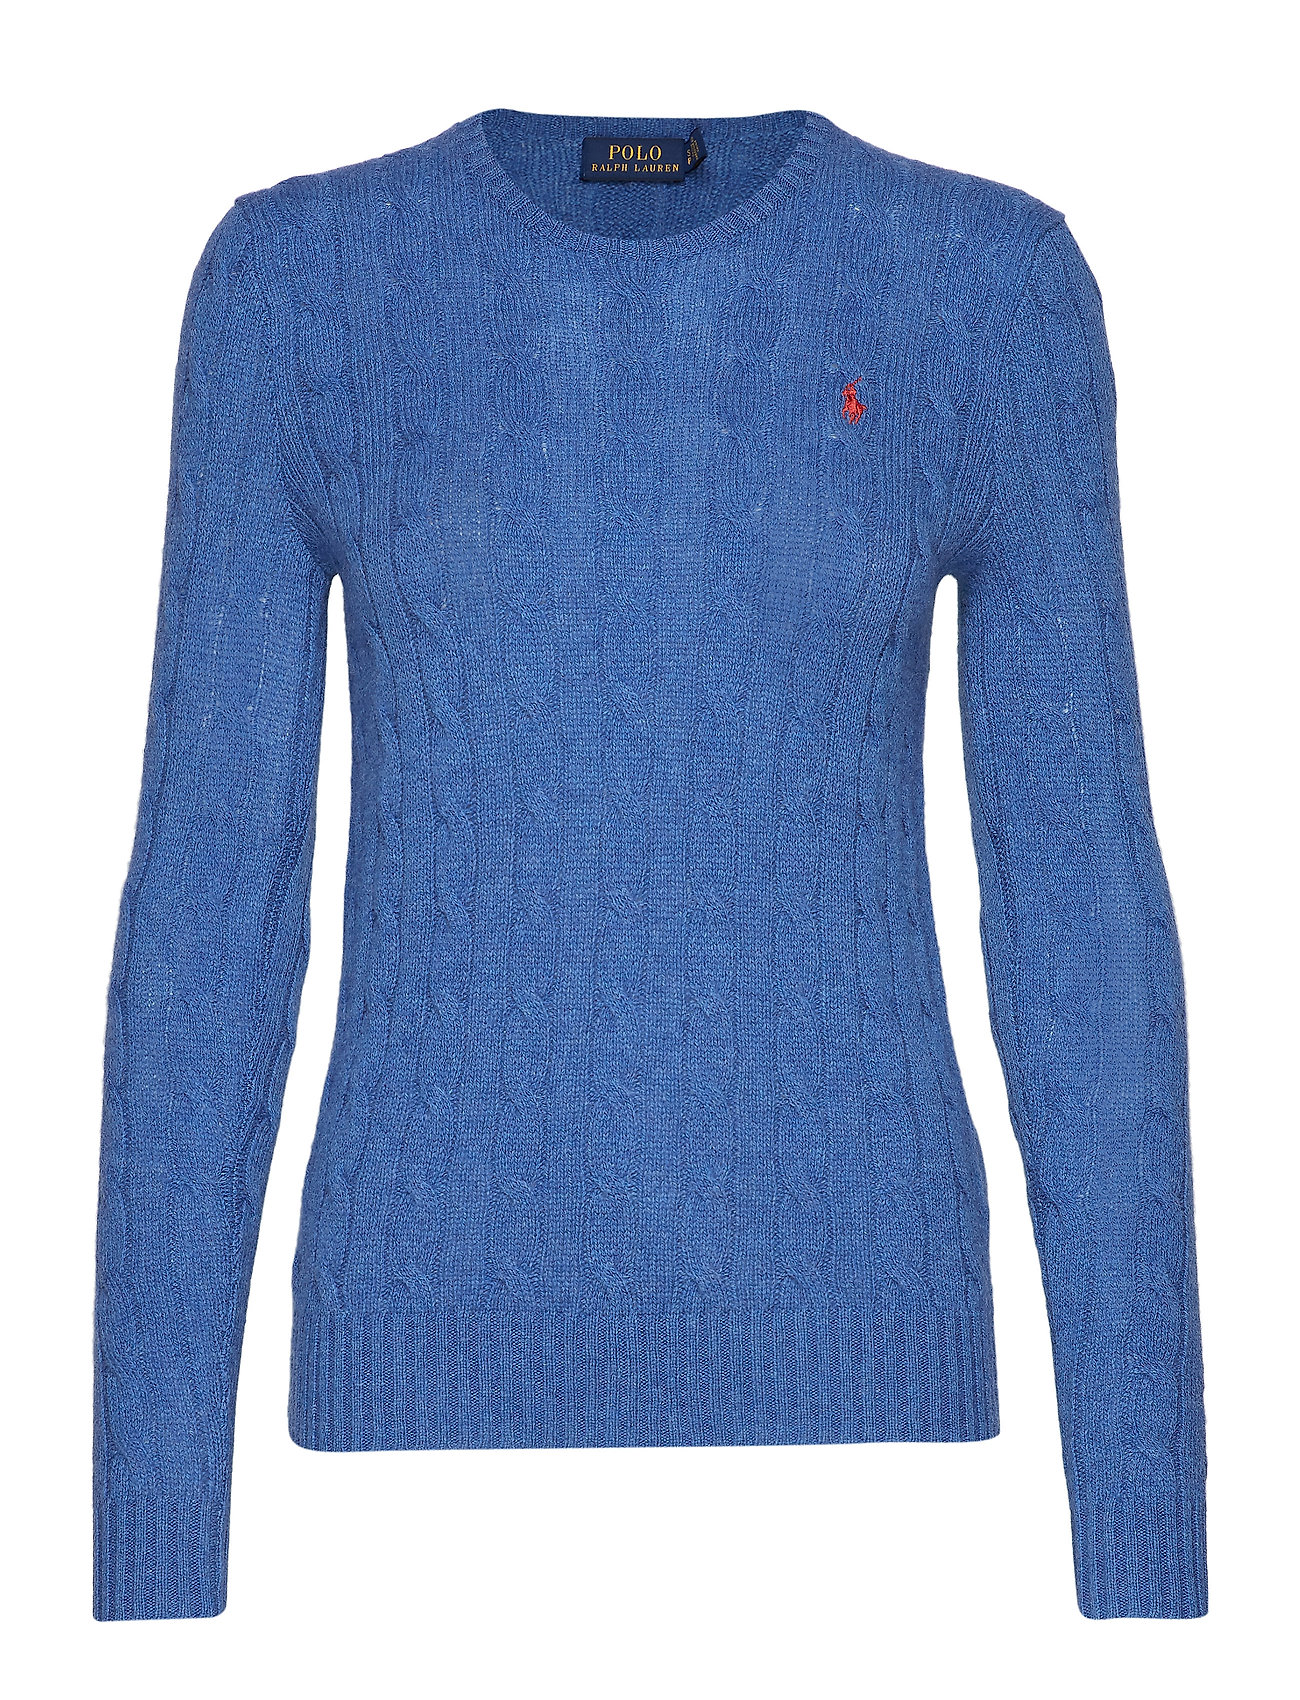 Polo Ralph Lauren Cable Wool-Cashmere Sweater - GENTIAN BLUE HEAT